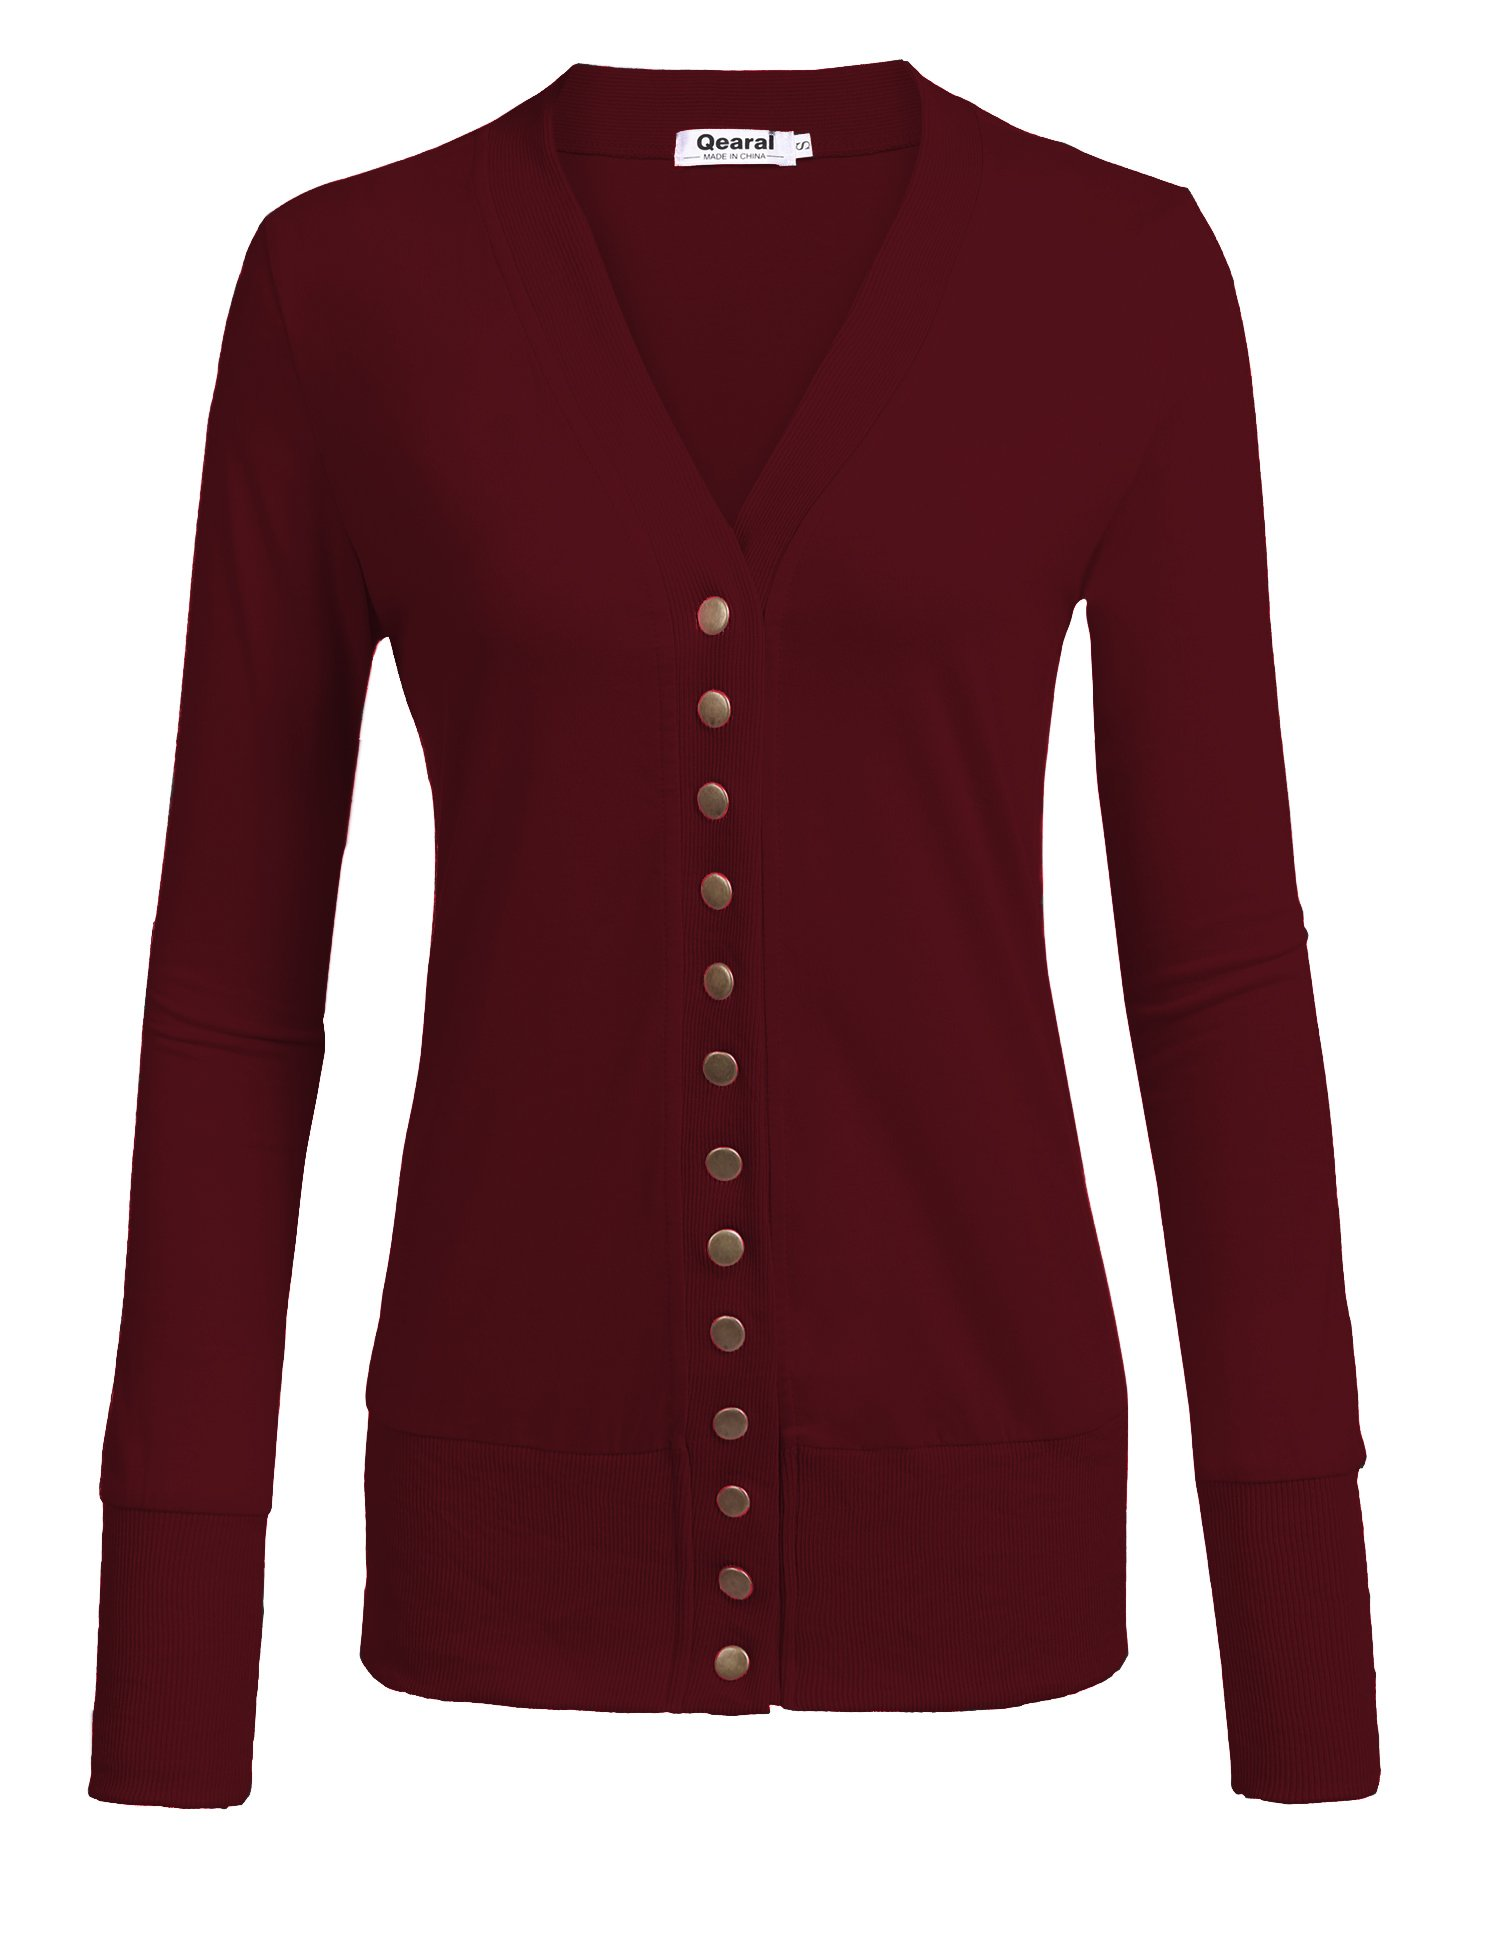 Qearal Womens V Neck Button Down Long Sleeve Soft Knit Snap Cardigans (S-2X) by Qearal